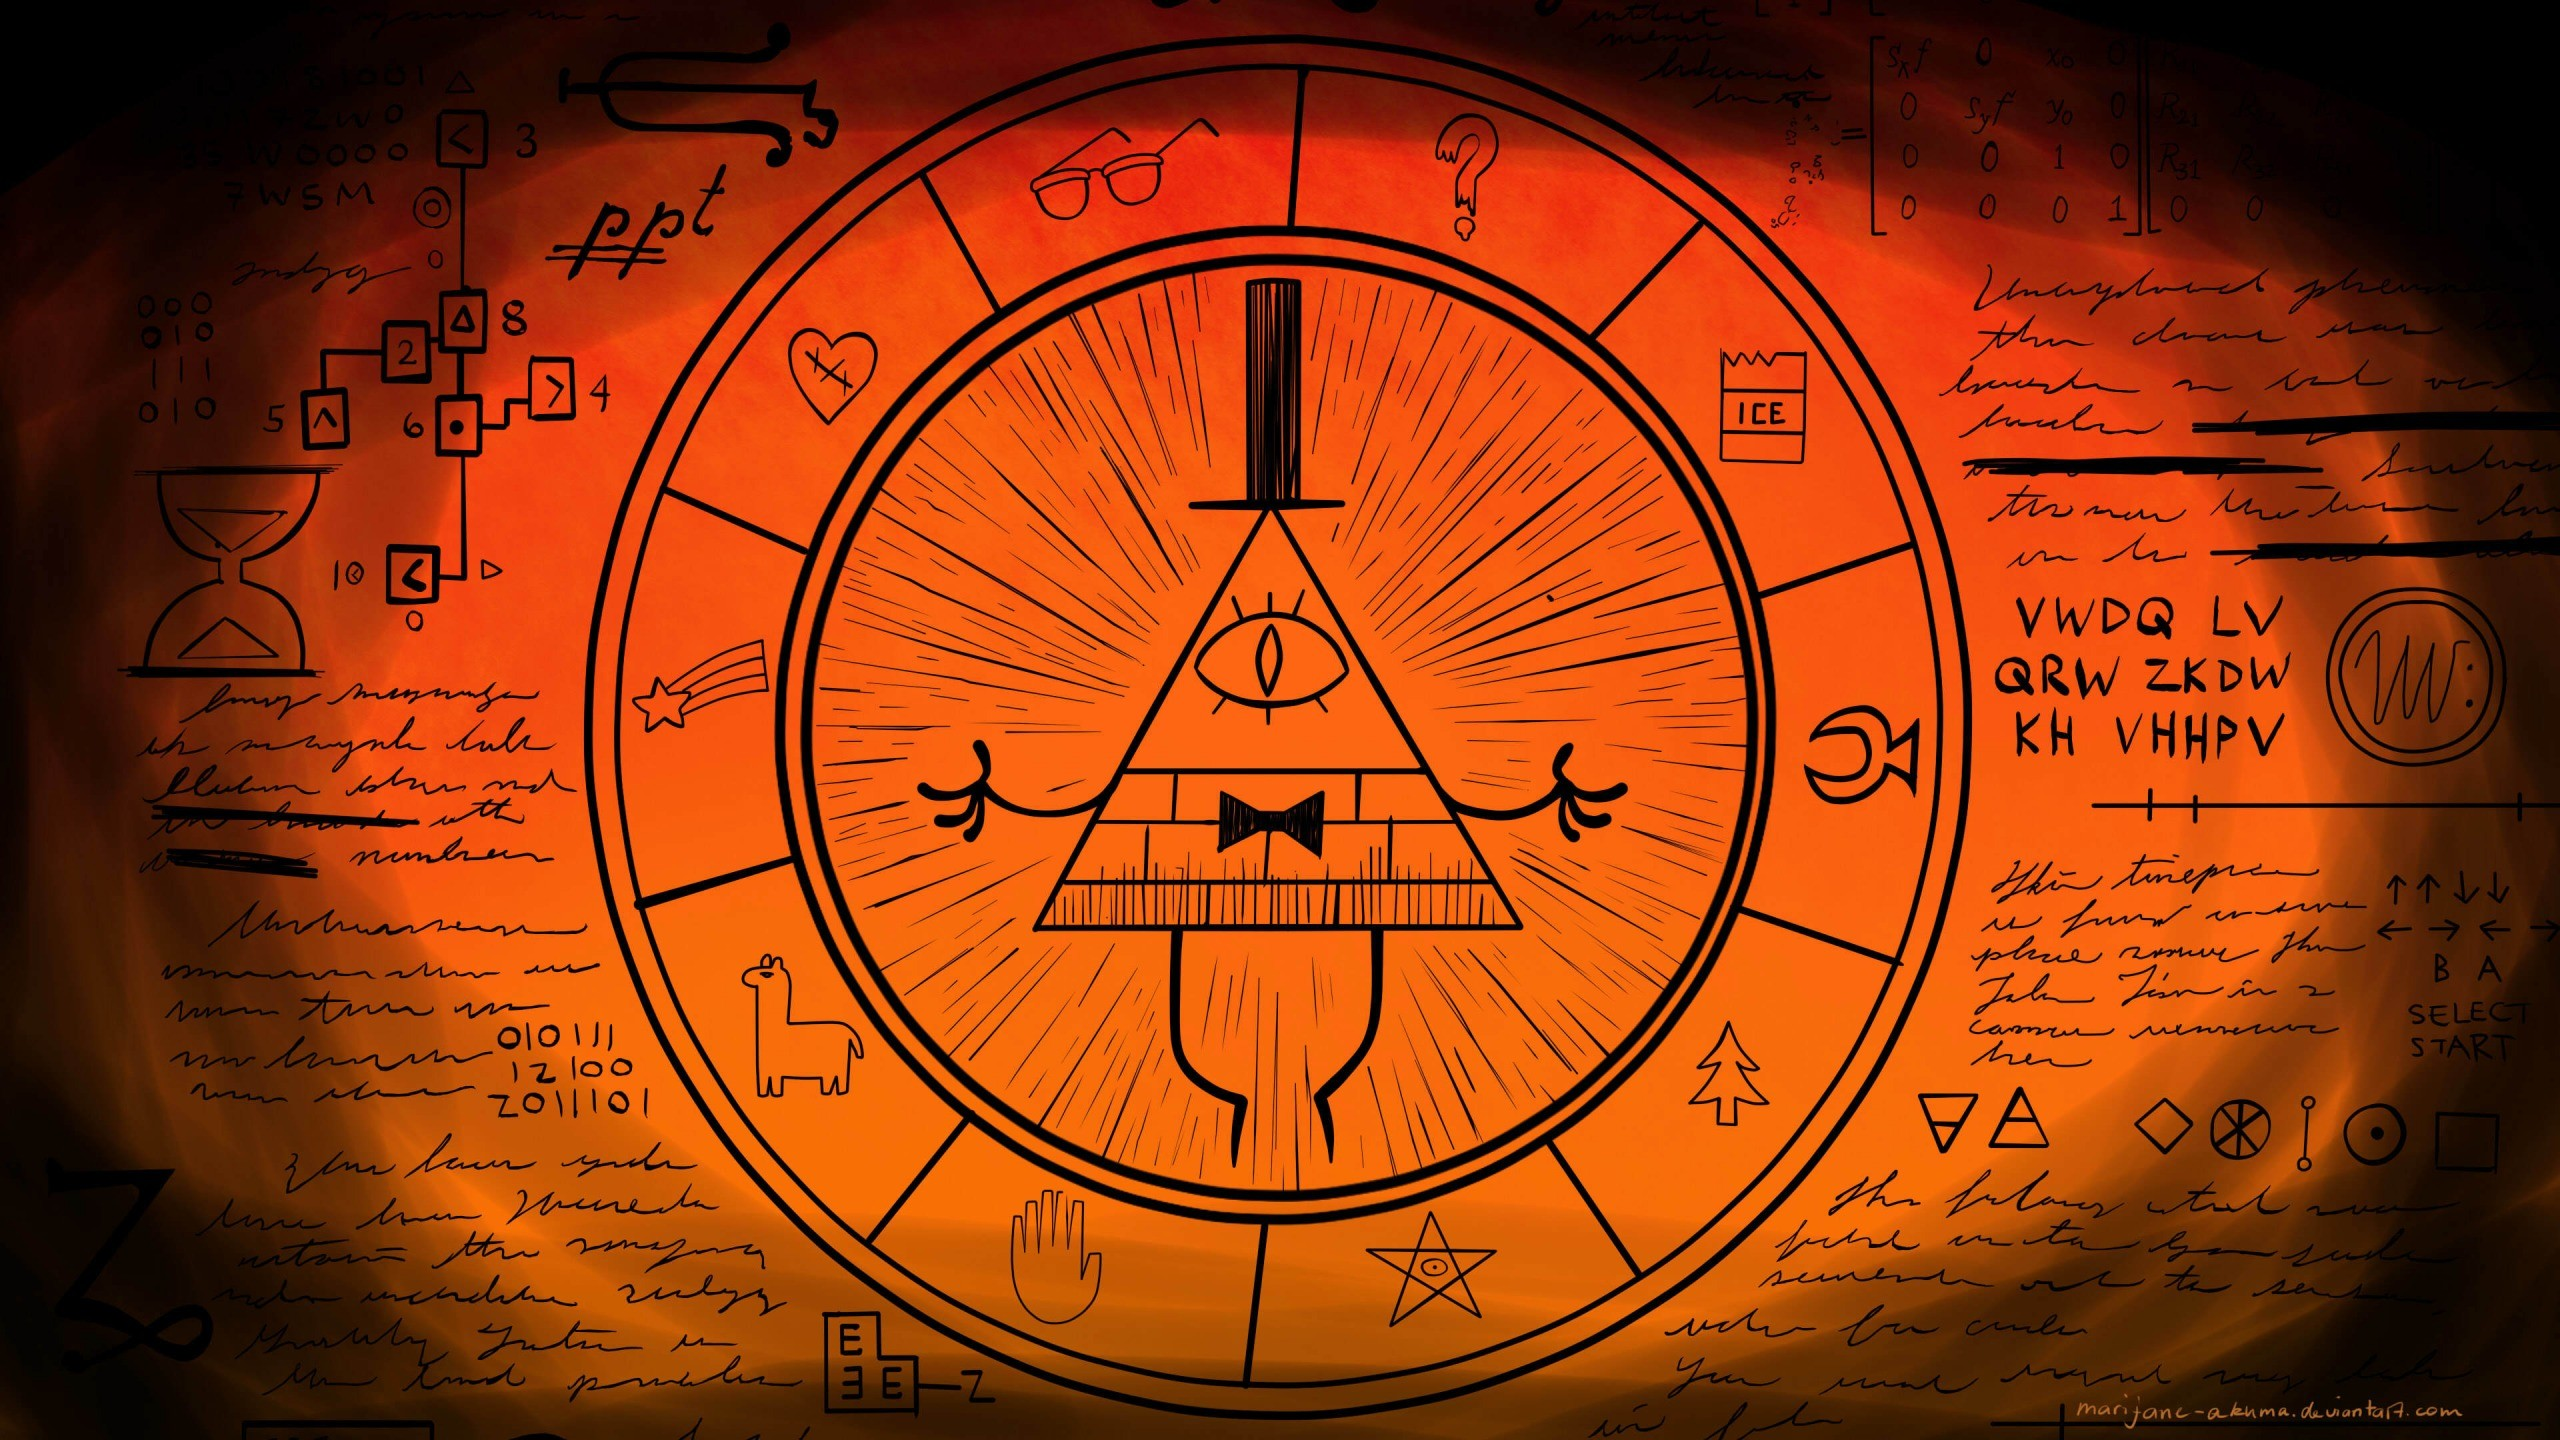 Gravity Falls Bill Cipher Wallpaper Iphone Gravity Falls Bill Cipher Wallpaper 80 Images